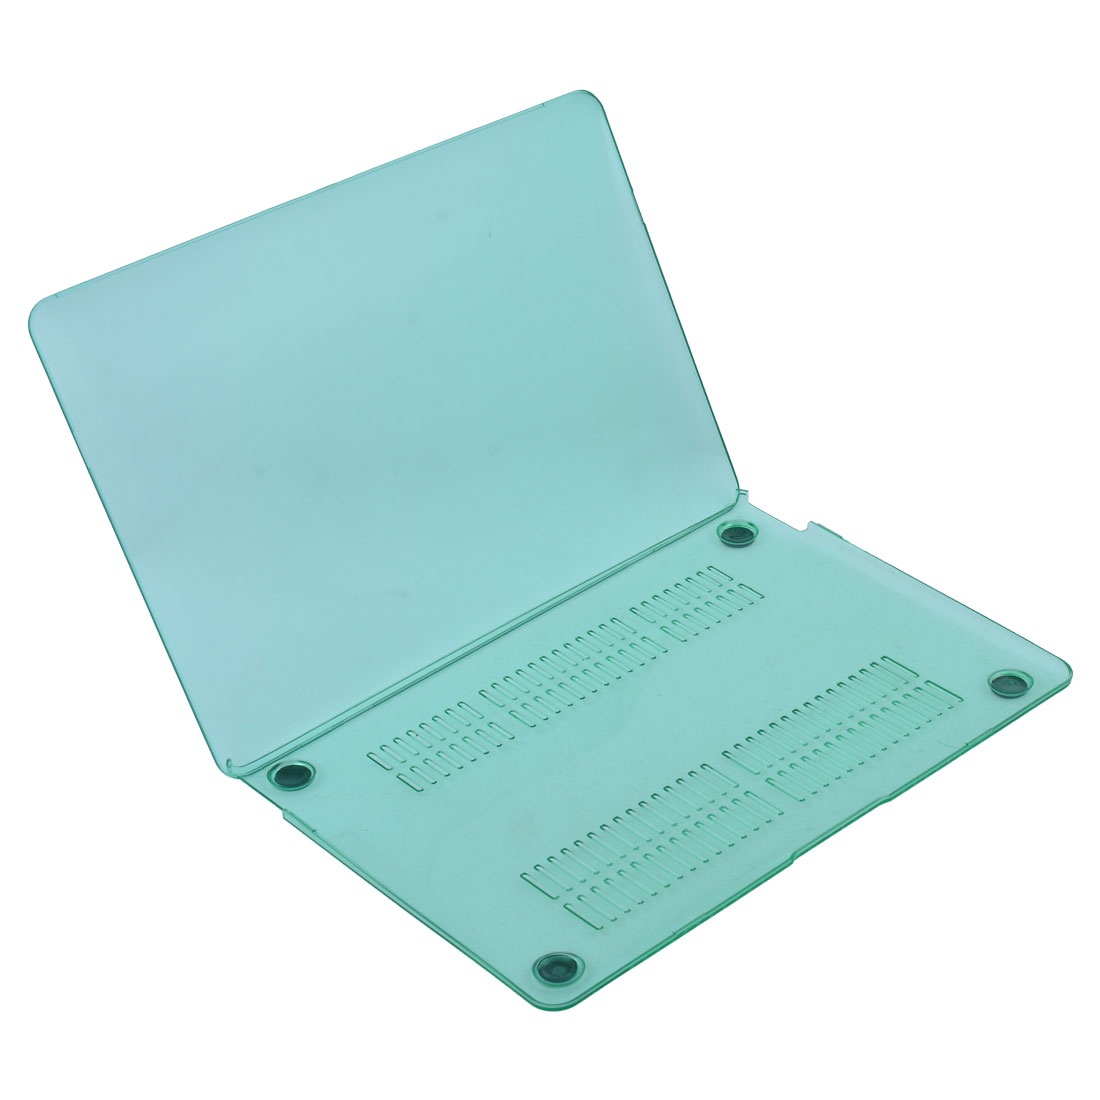 "Plastic Crystal Hard Case Shell Turquoise Blue for Apple Macbook 12"" Retina"